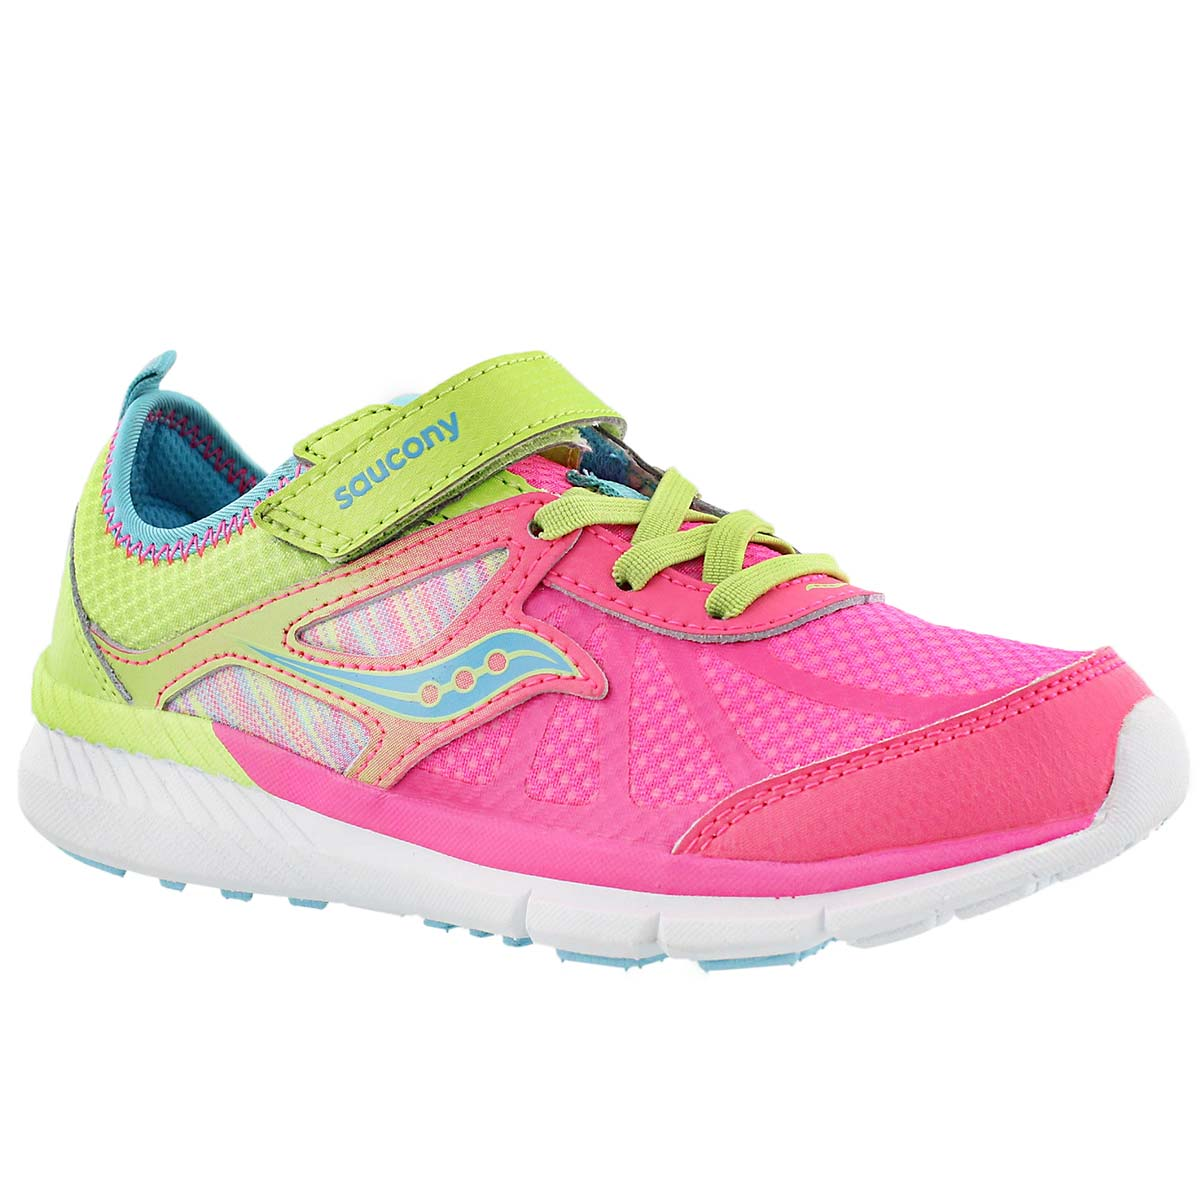 Grls Volt multicoloured running shoe